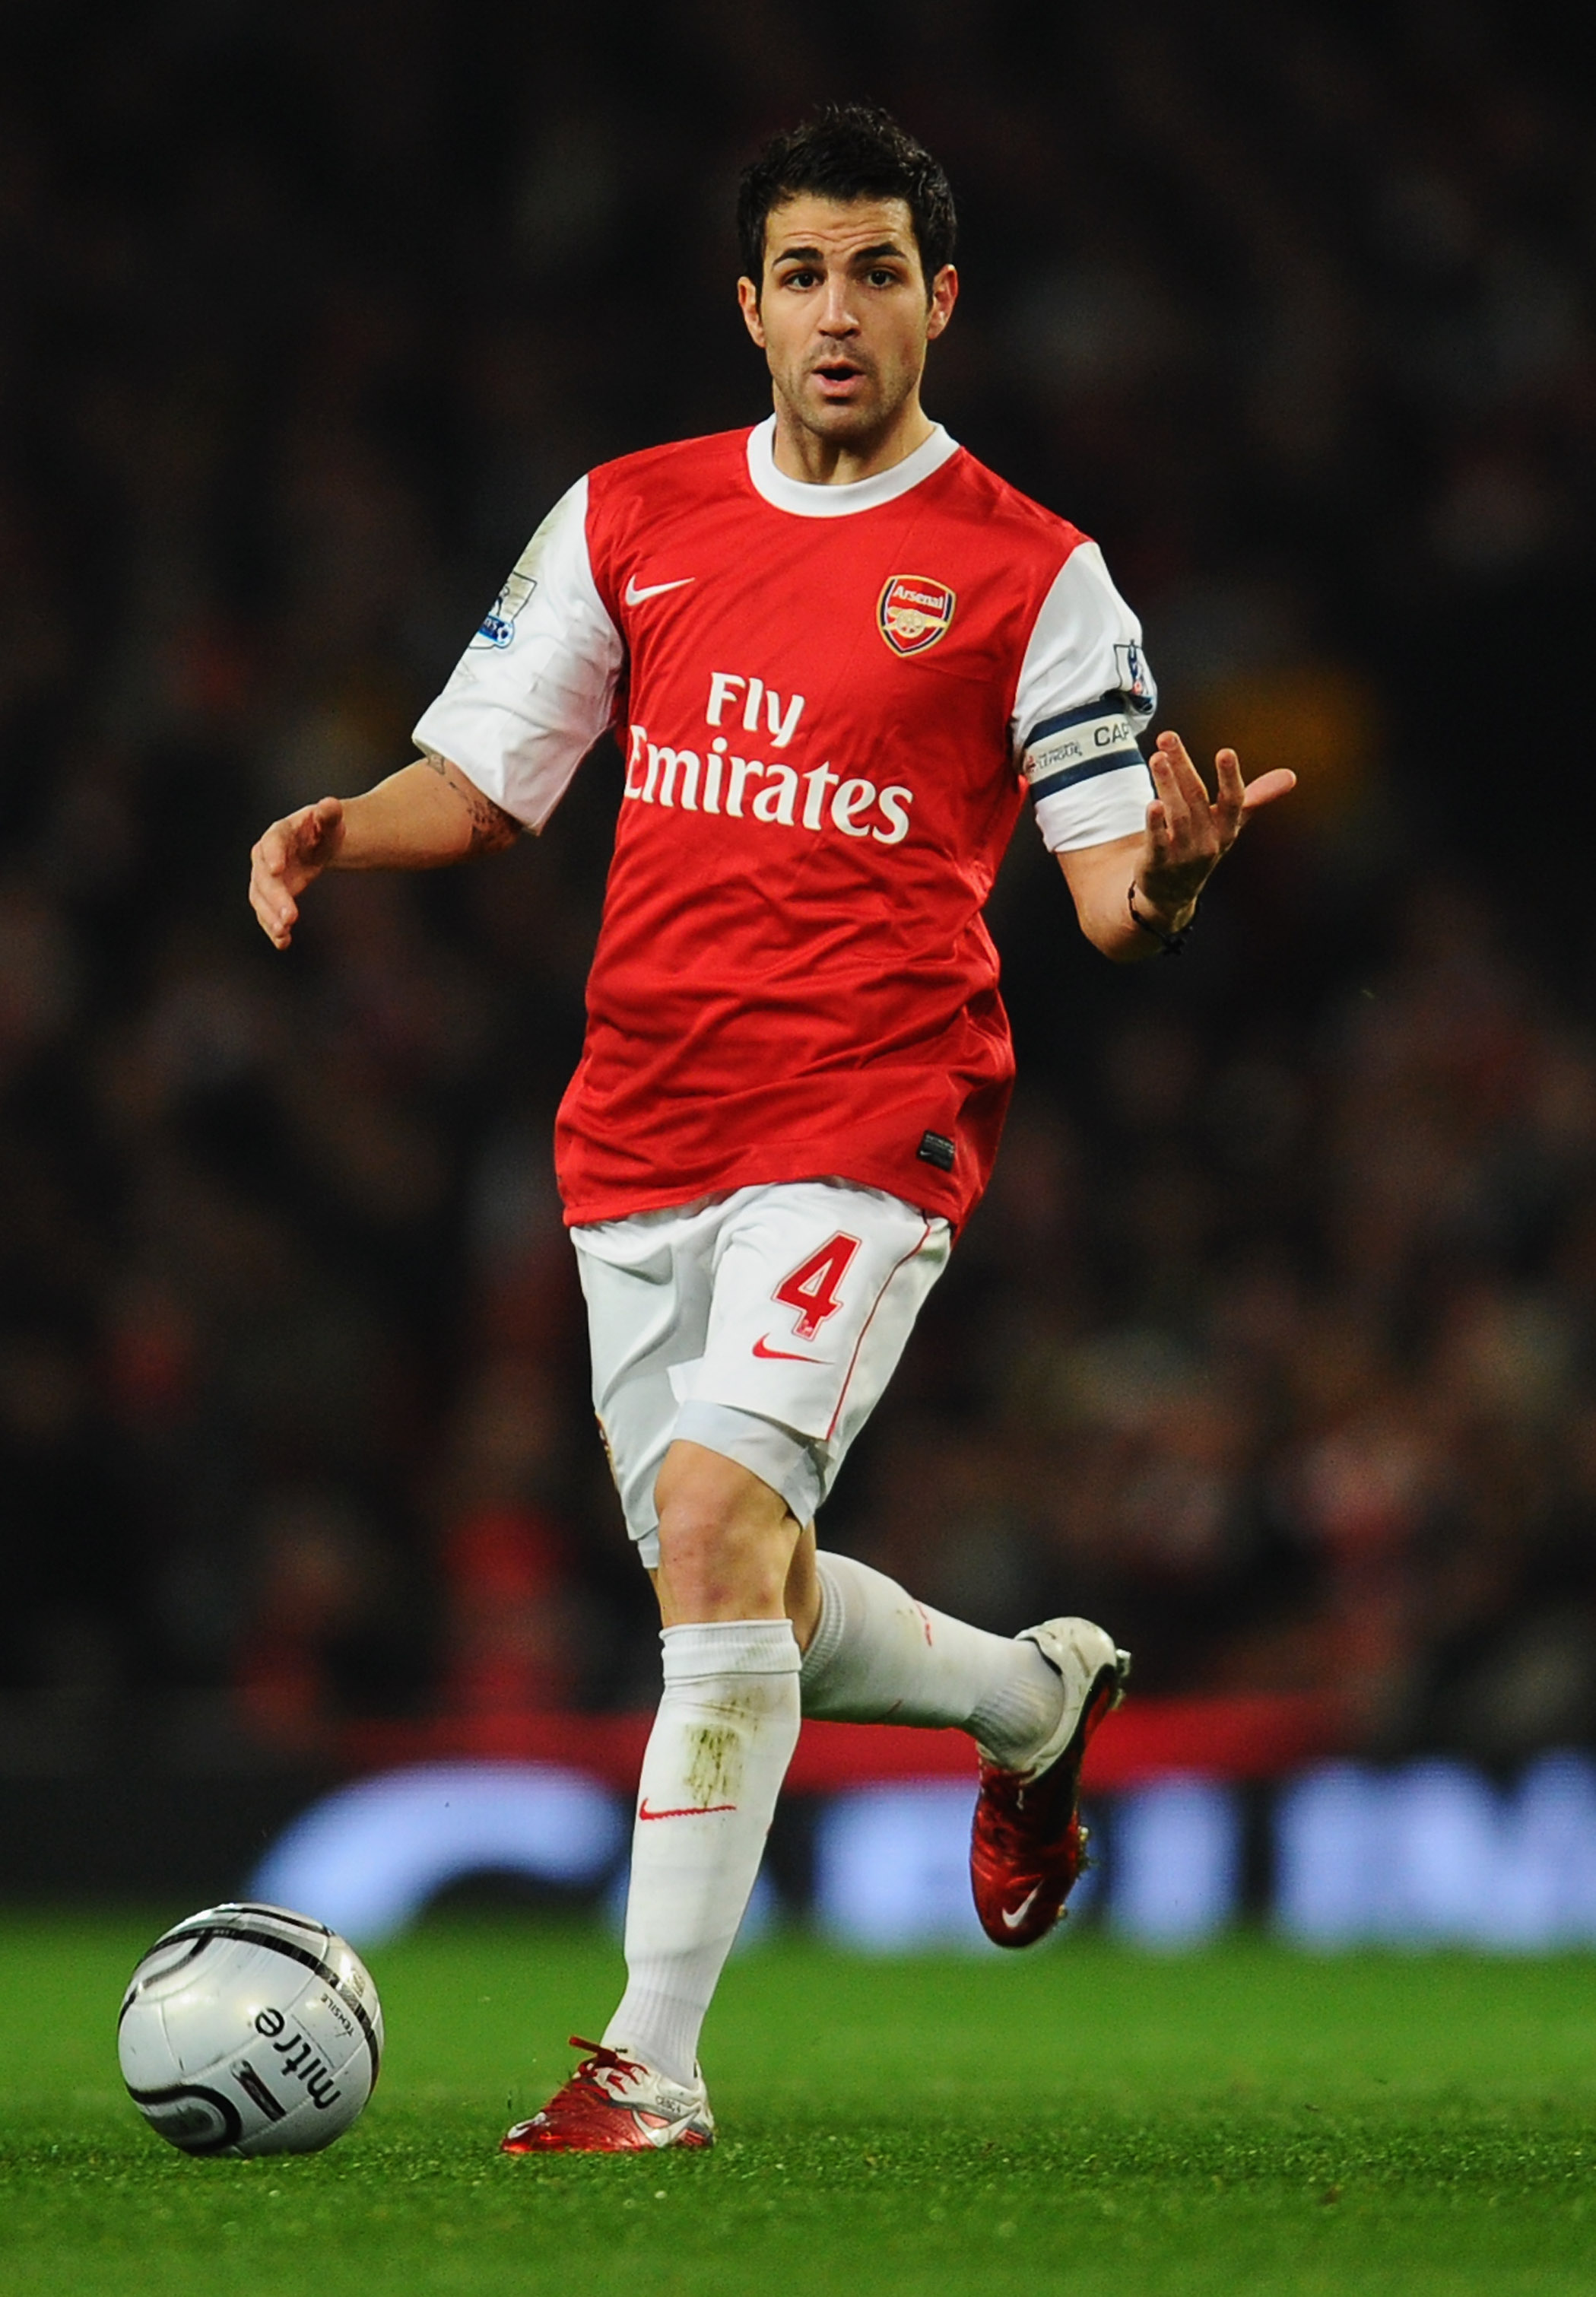 LONDON, ENGLAND - JANUARY 25:  Cesc Fabregas of Arsenal in action during the Carling Cup Semi Final Second Leg match between Arsenal and Ipswich Town at Emirates Stadium on January 25, 2011 in London, England.  (Photo by Clive Mason/Getty Images)